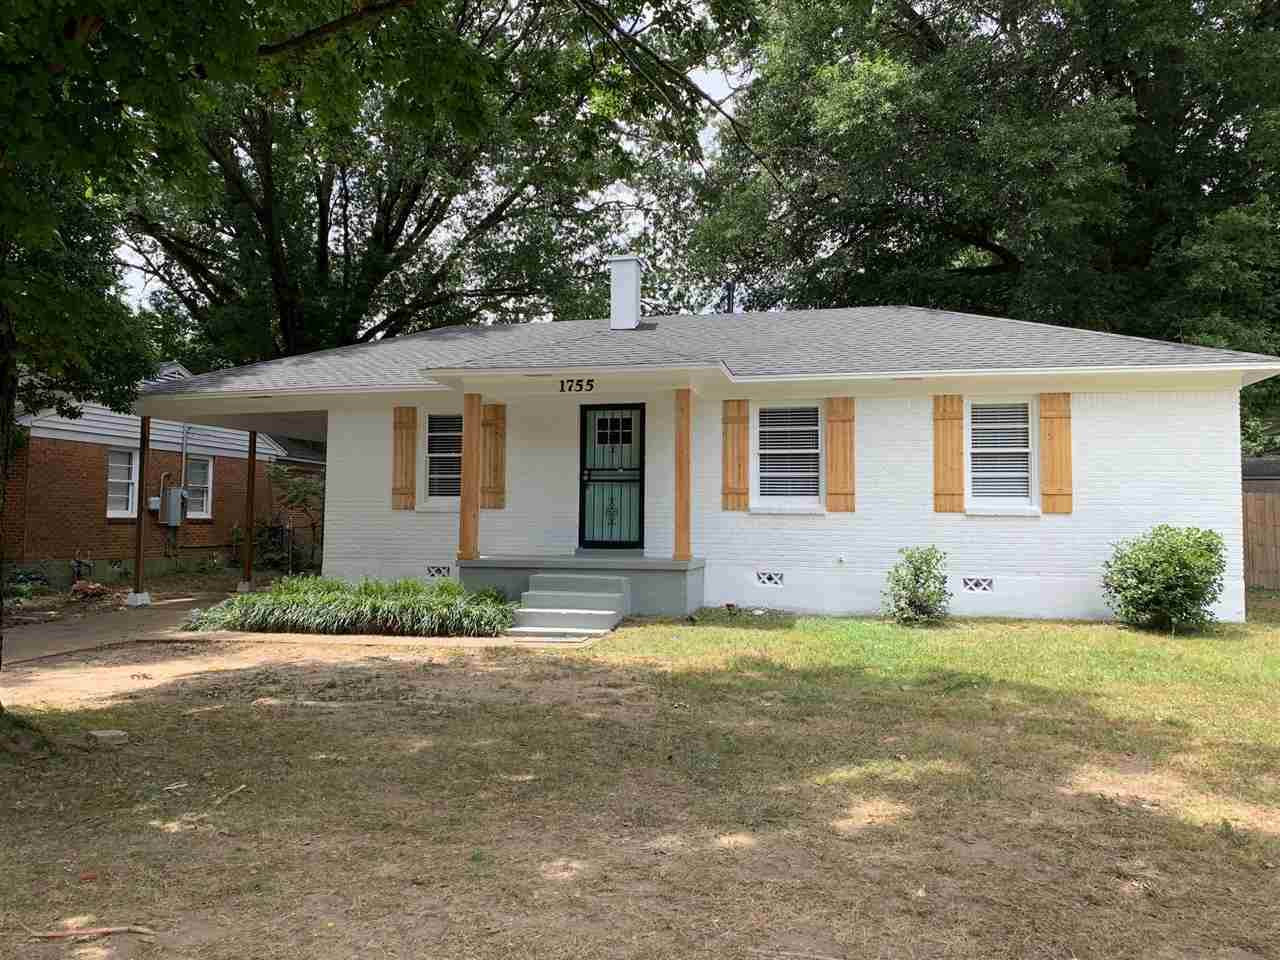 1755 Perkins Rd - Photo 1